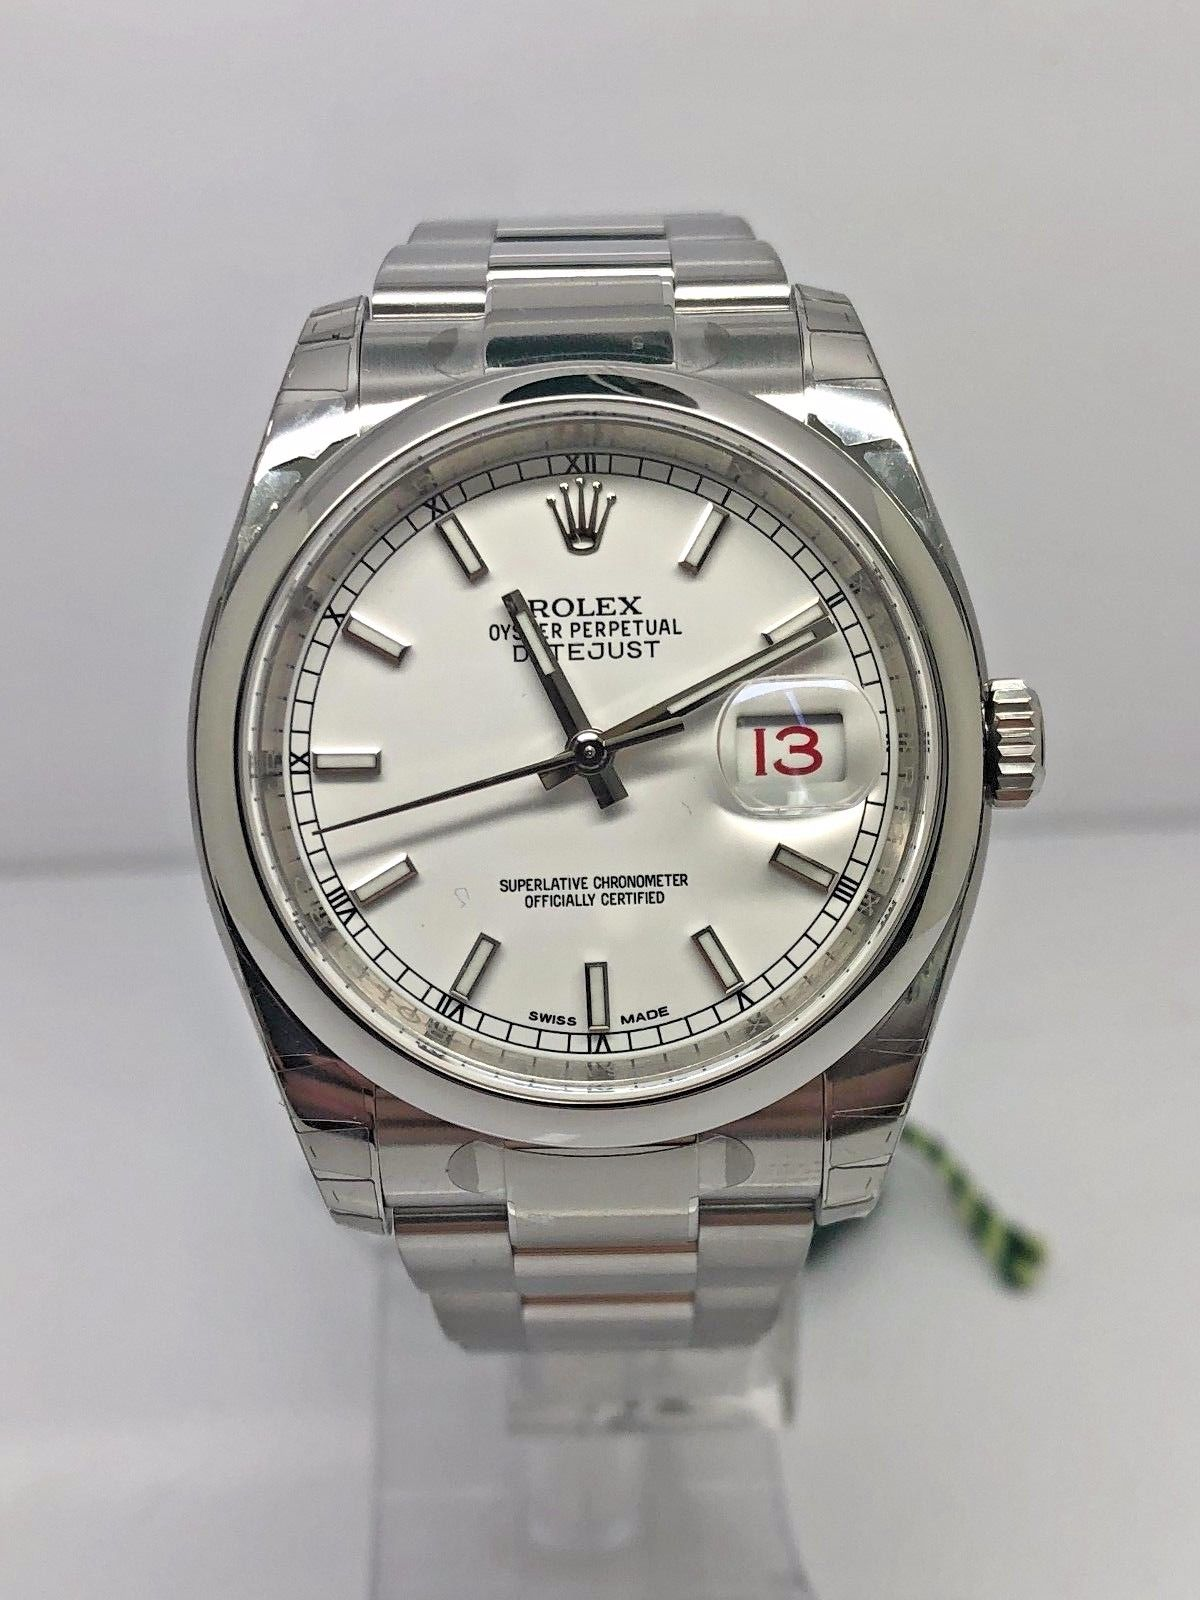 Rolex datejust 36 steel 116200 m r gold jewellers for Rolex date just 36